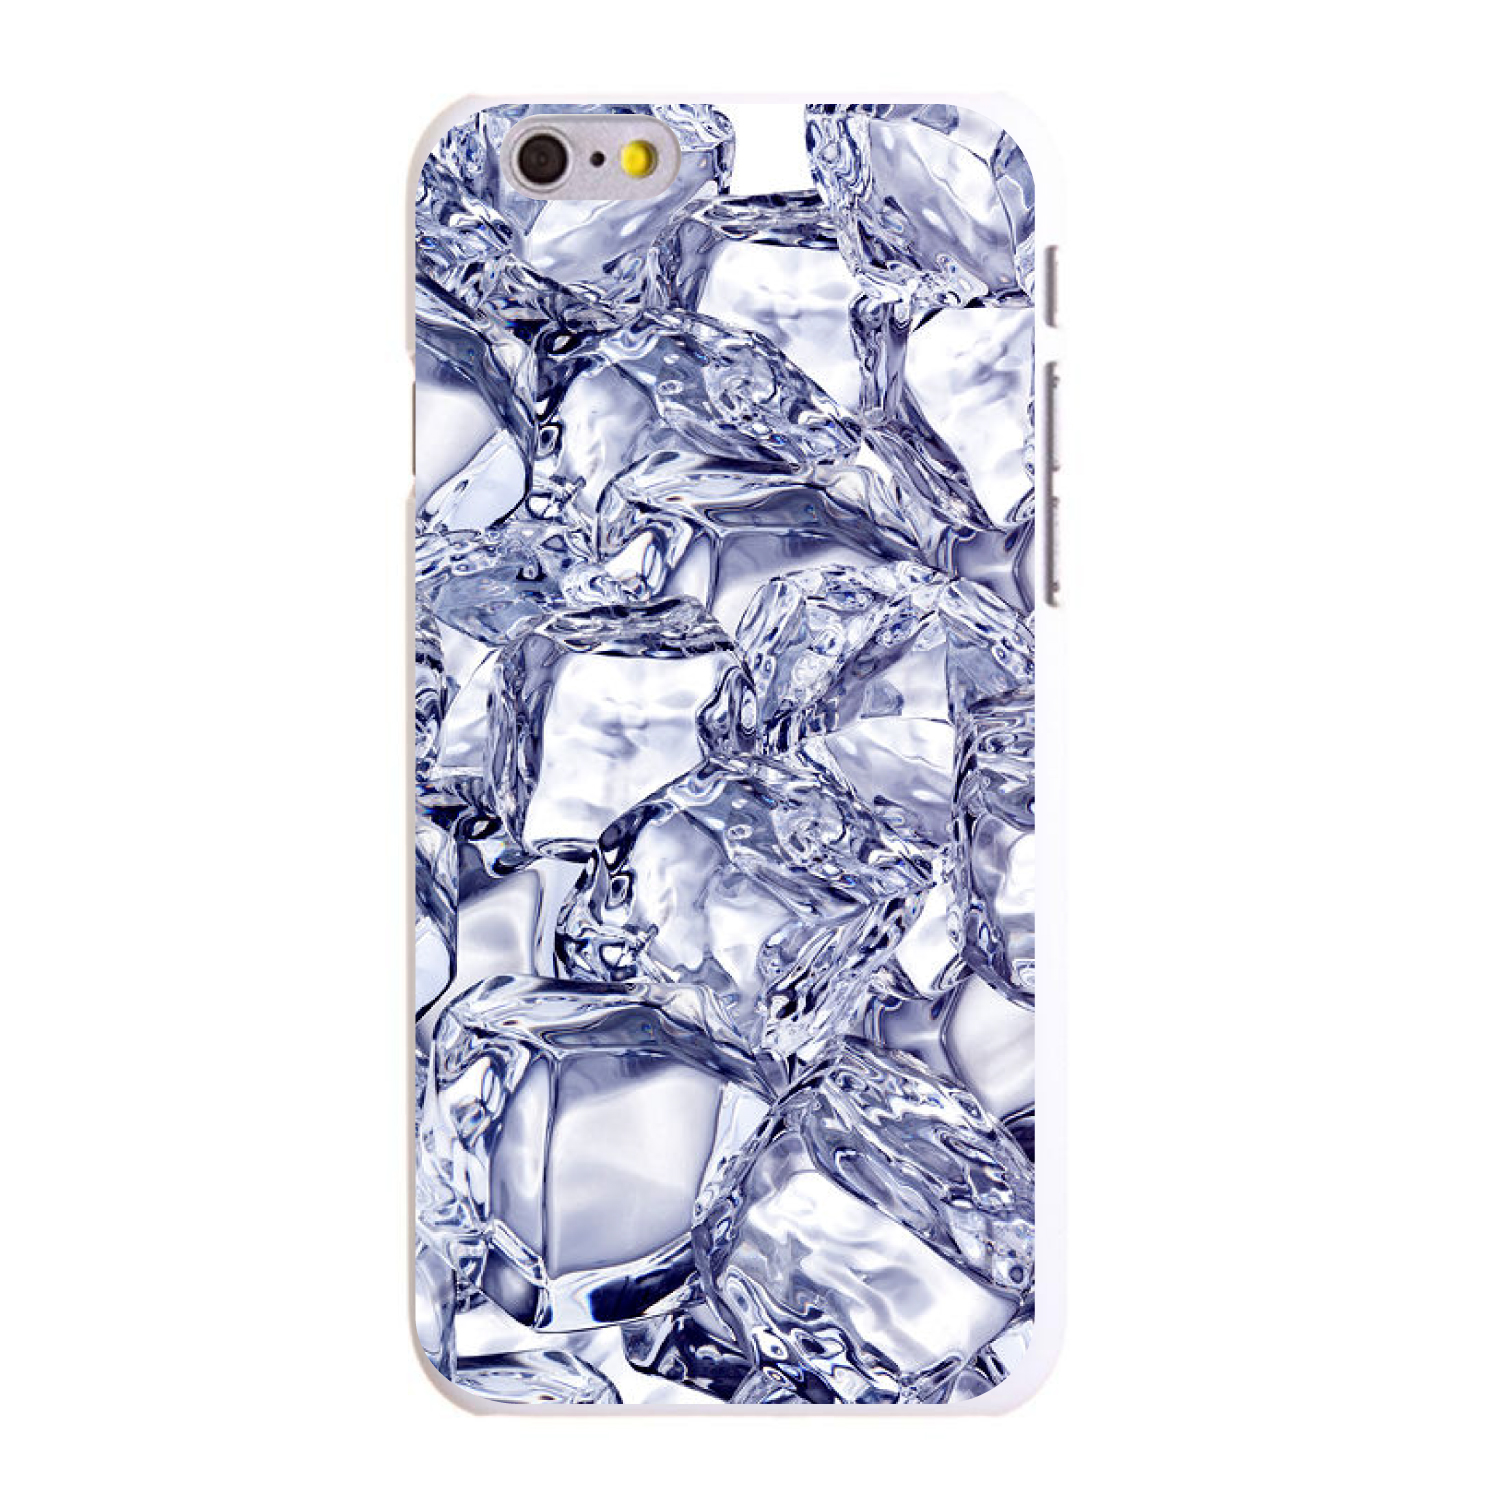 "CUSTOM White Hard Plastic Snap-On Case for Apple iPhone 6 / 6S (4.7"" Screen) - Crystal Clear Ice"